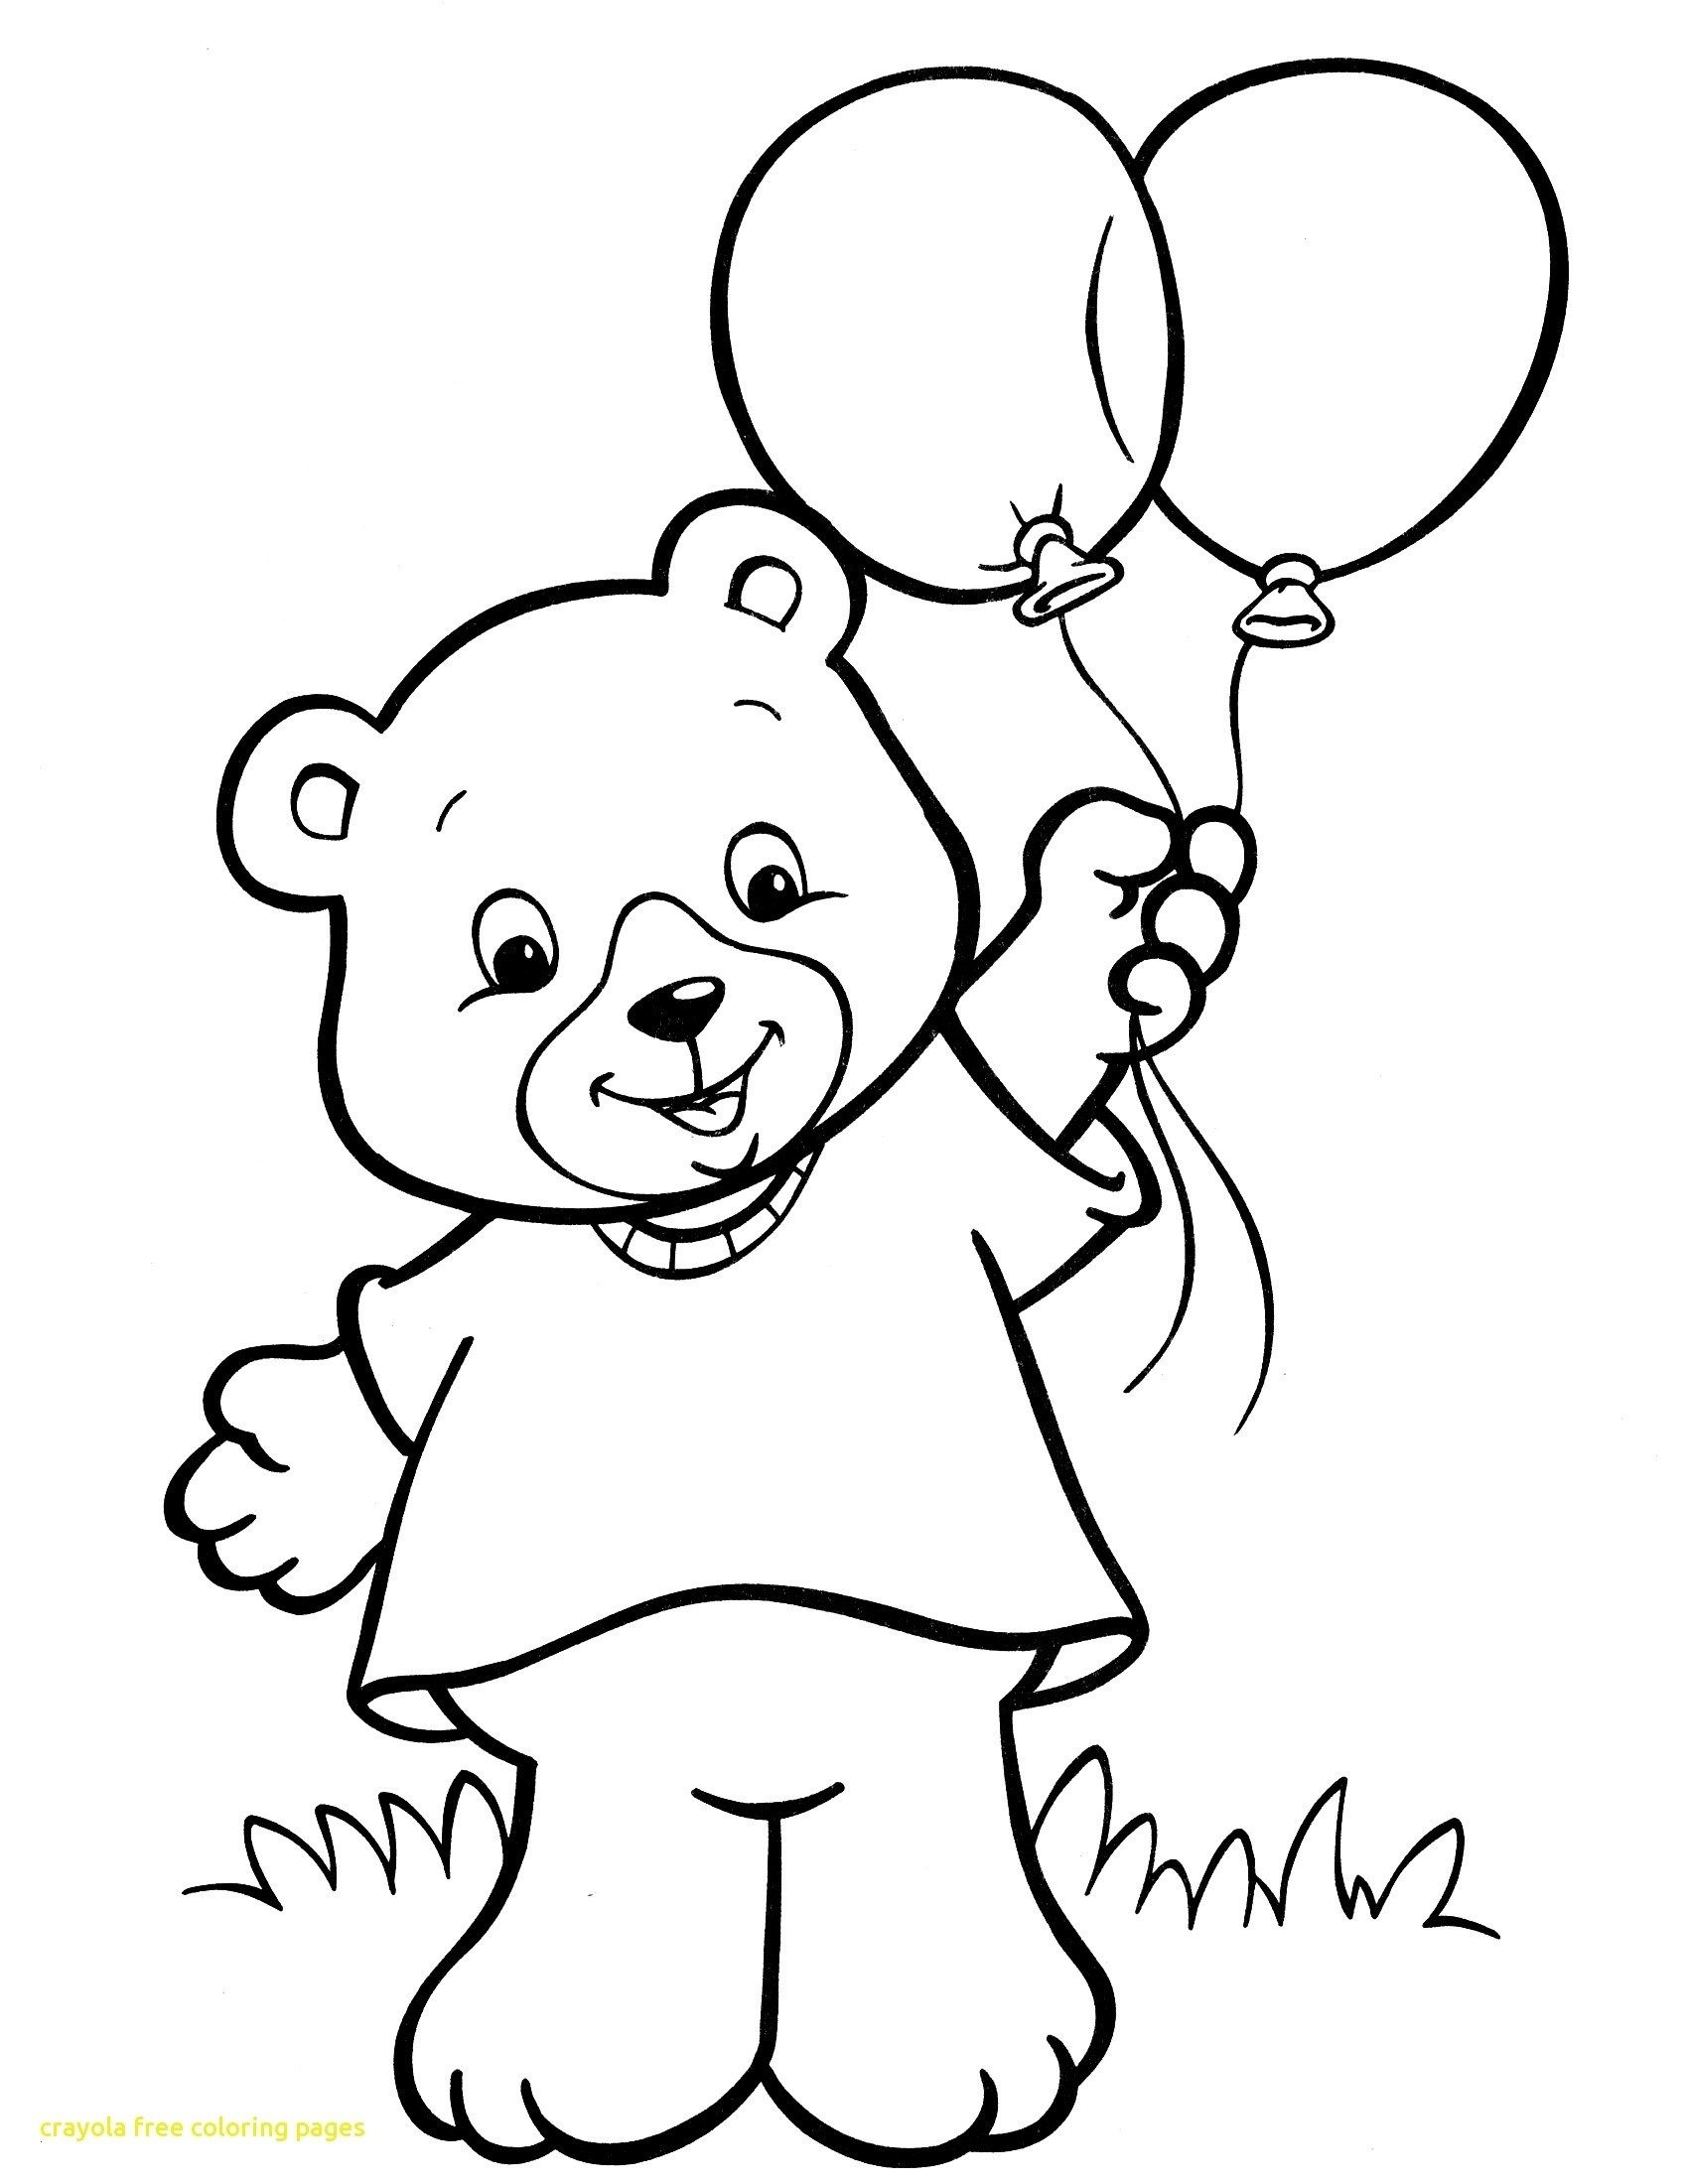 Best Markers For Coloring Mandalas Inspirational Stock Crayola Printable Coloring Pages Fres Birthday Coloring Pages Bear Coloring Pages Crayola Coloring Pages